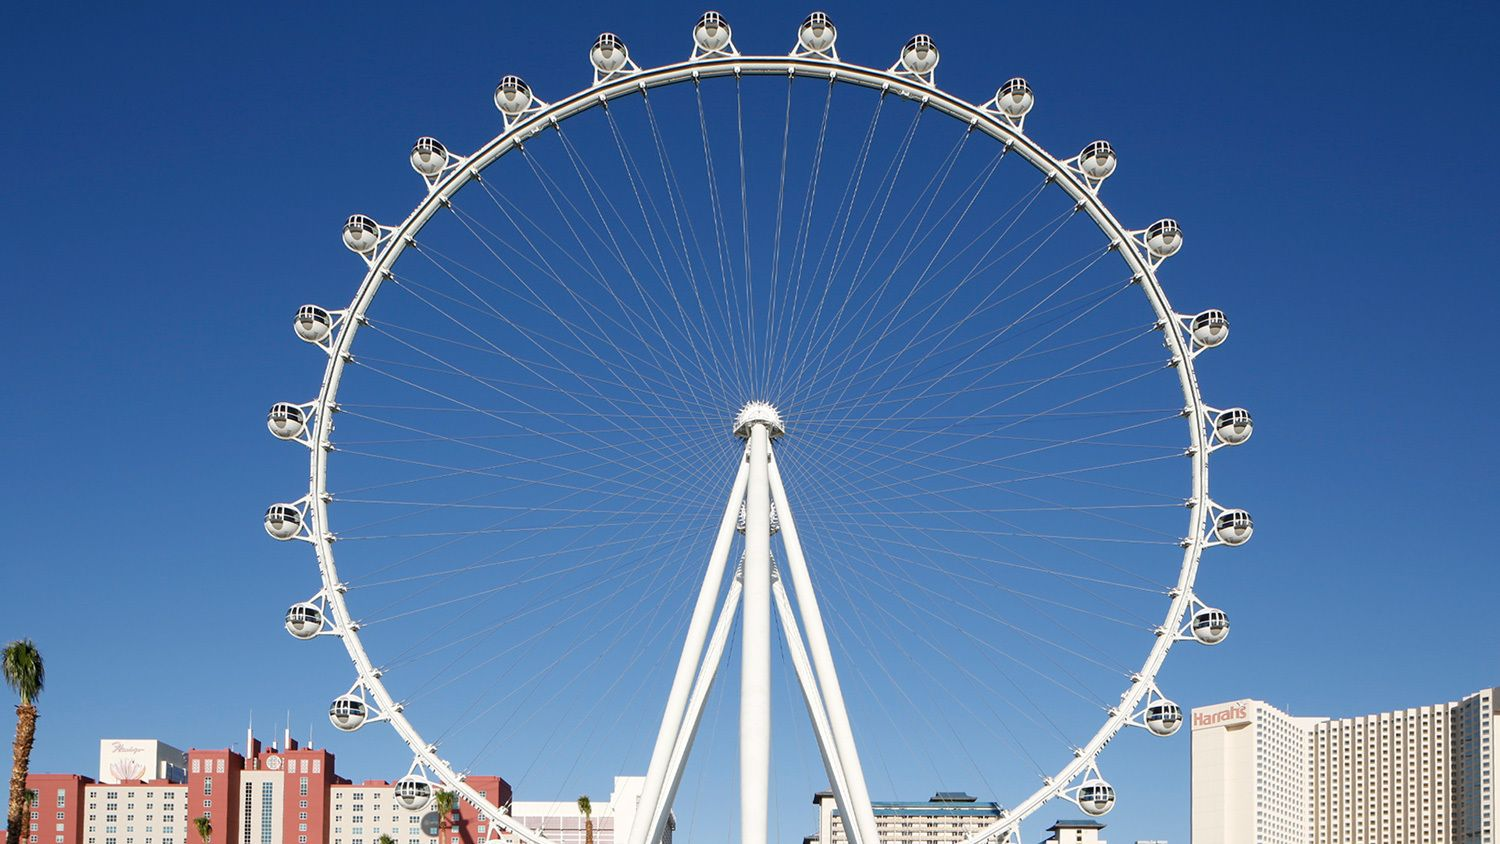 Daytime image of The High Roller Observation Wheel in Las Vegas